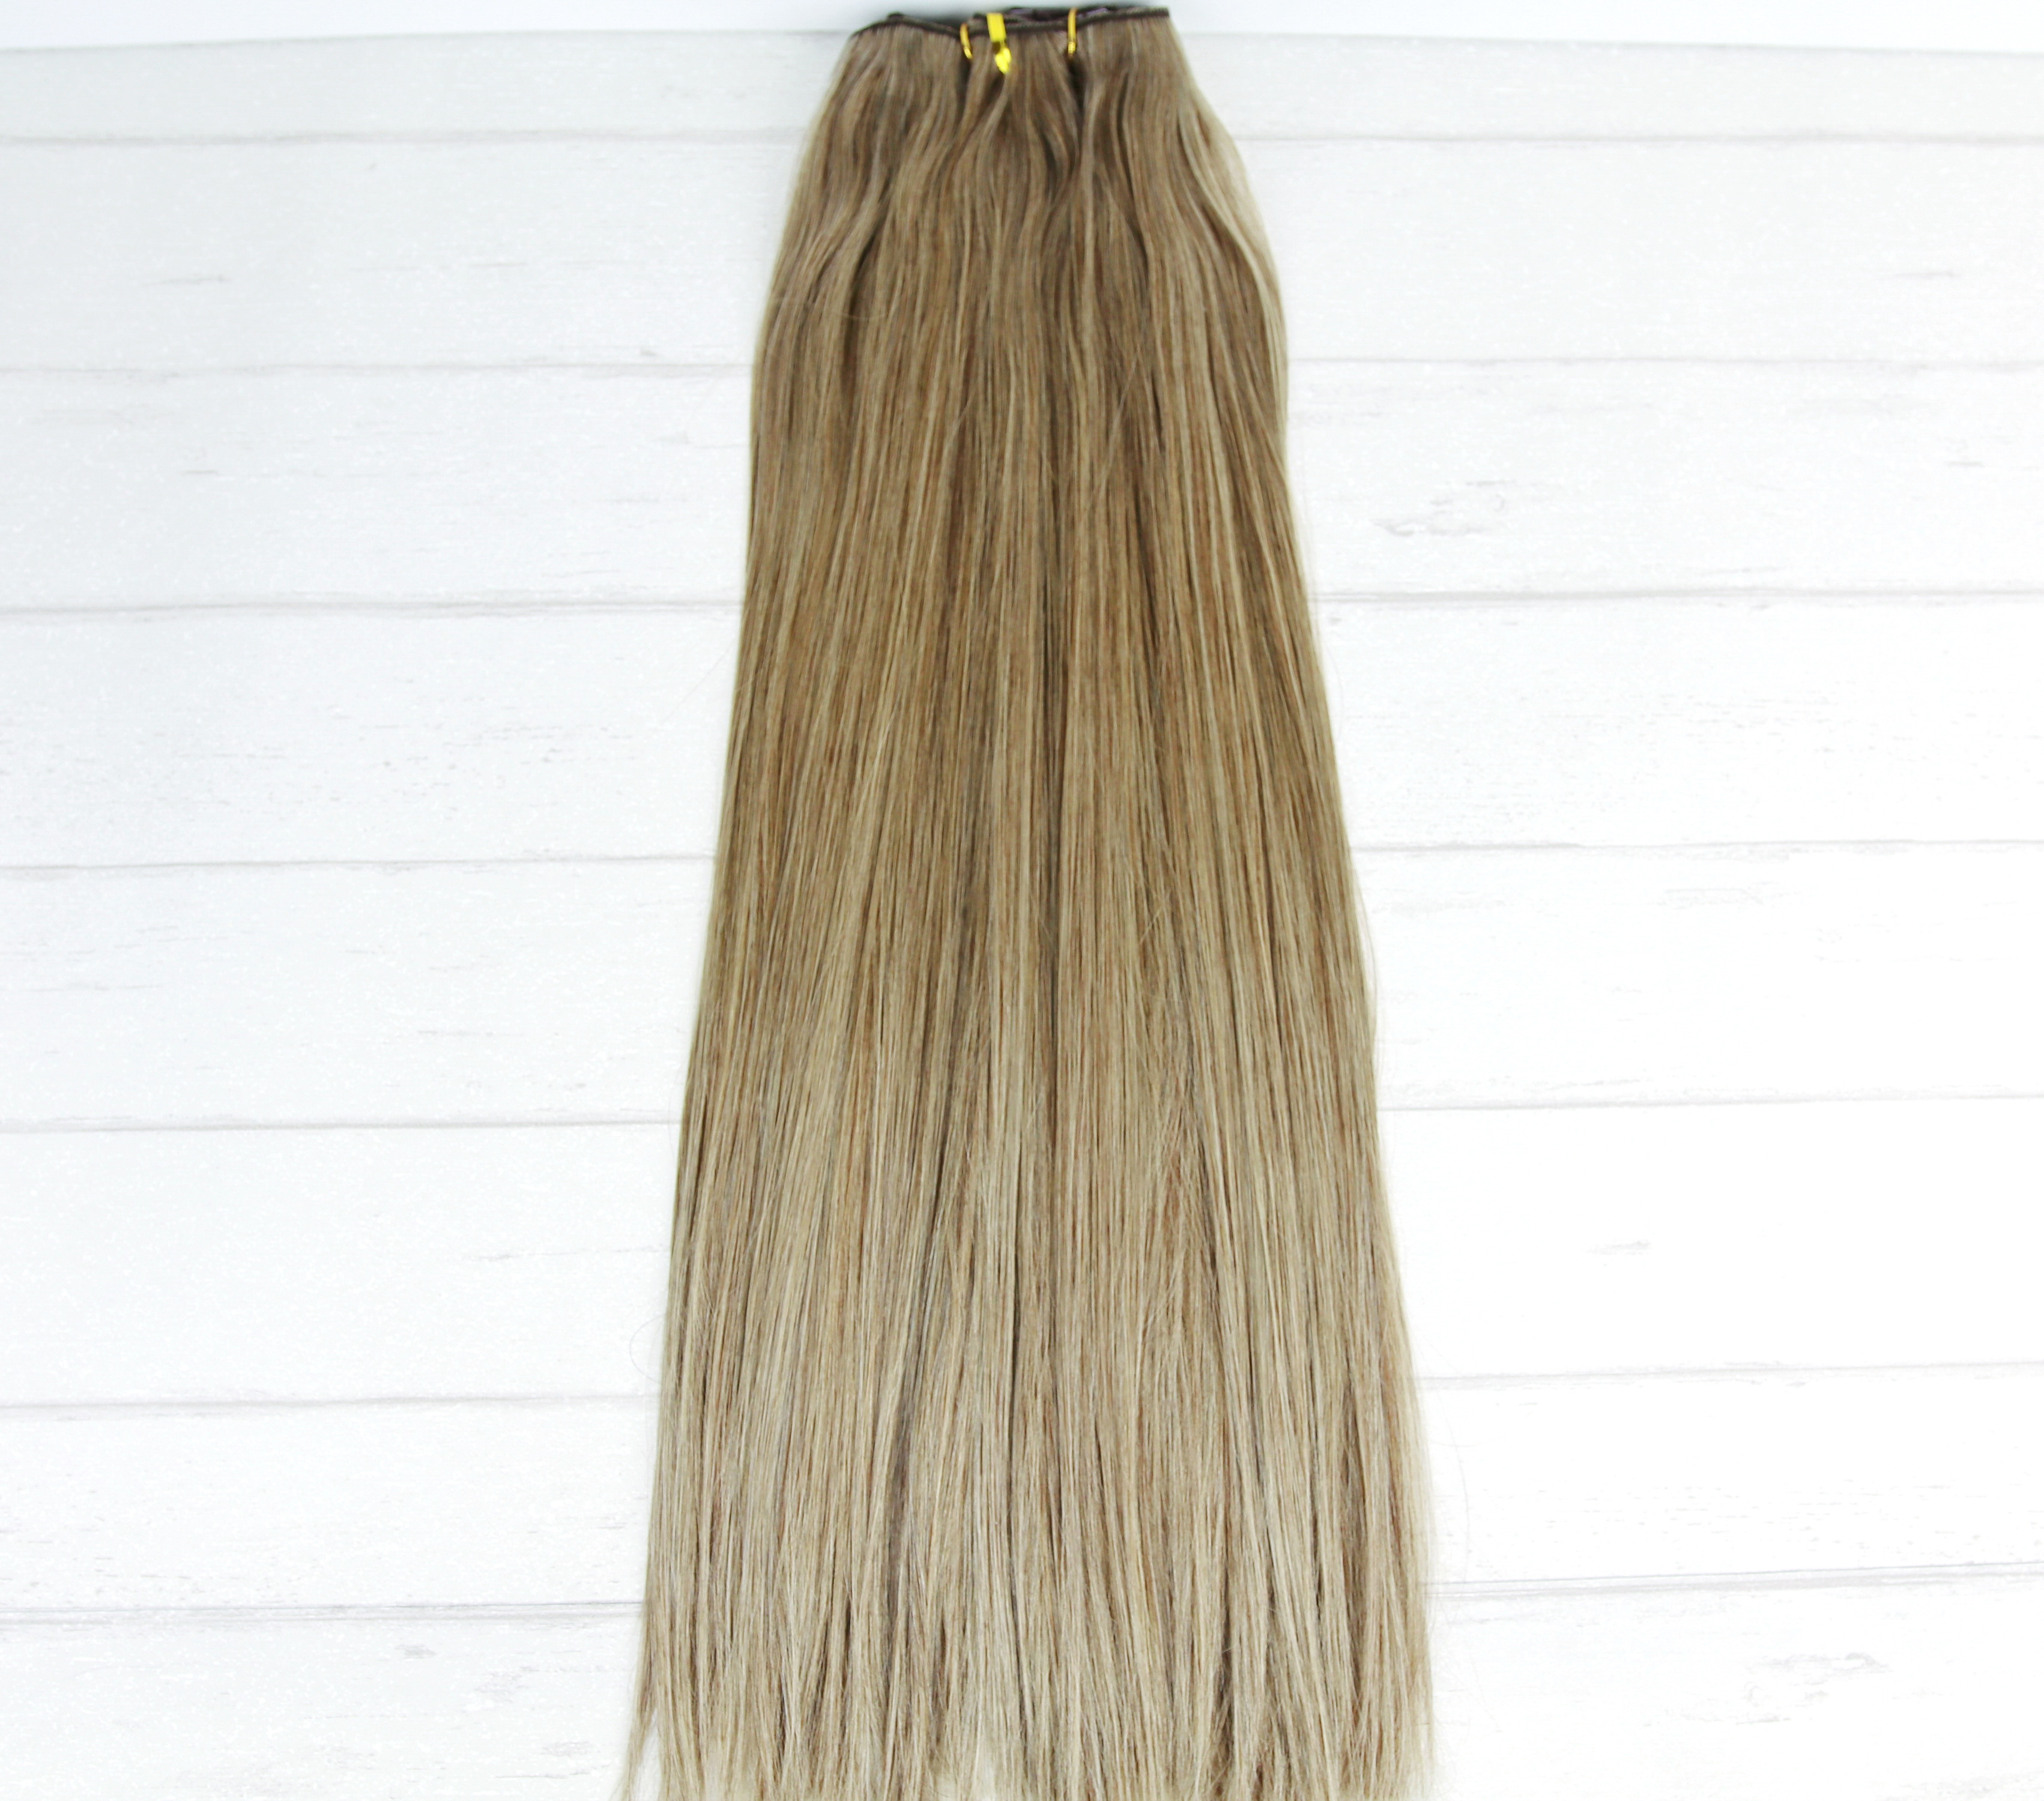 18 dirty blonde clip in hair extensions 120g to 380g 20 22 24 18dirtyblondeclipinhairextensionshumanremydoubledrawnchicsyhair3resize pmusecretfo Image collections